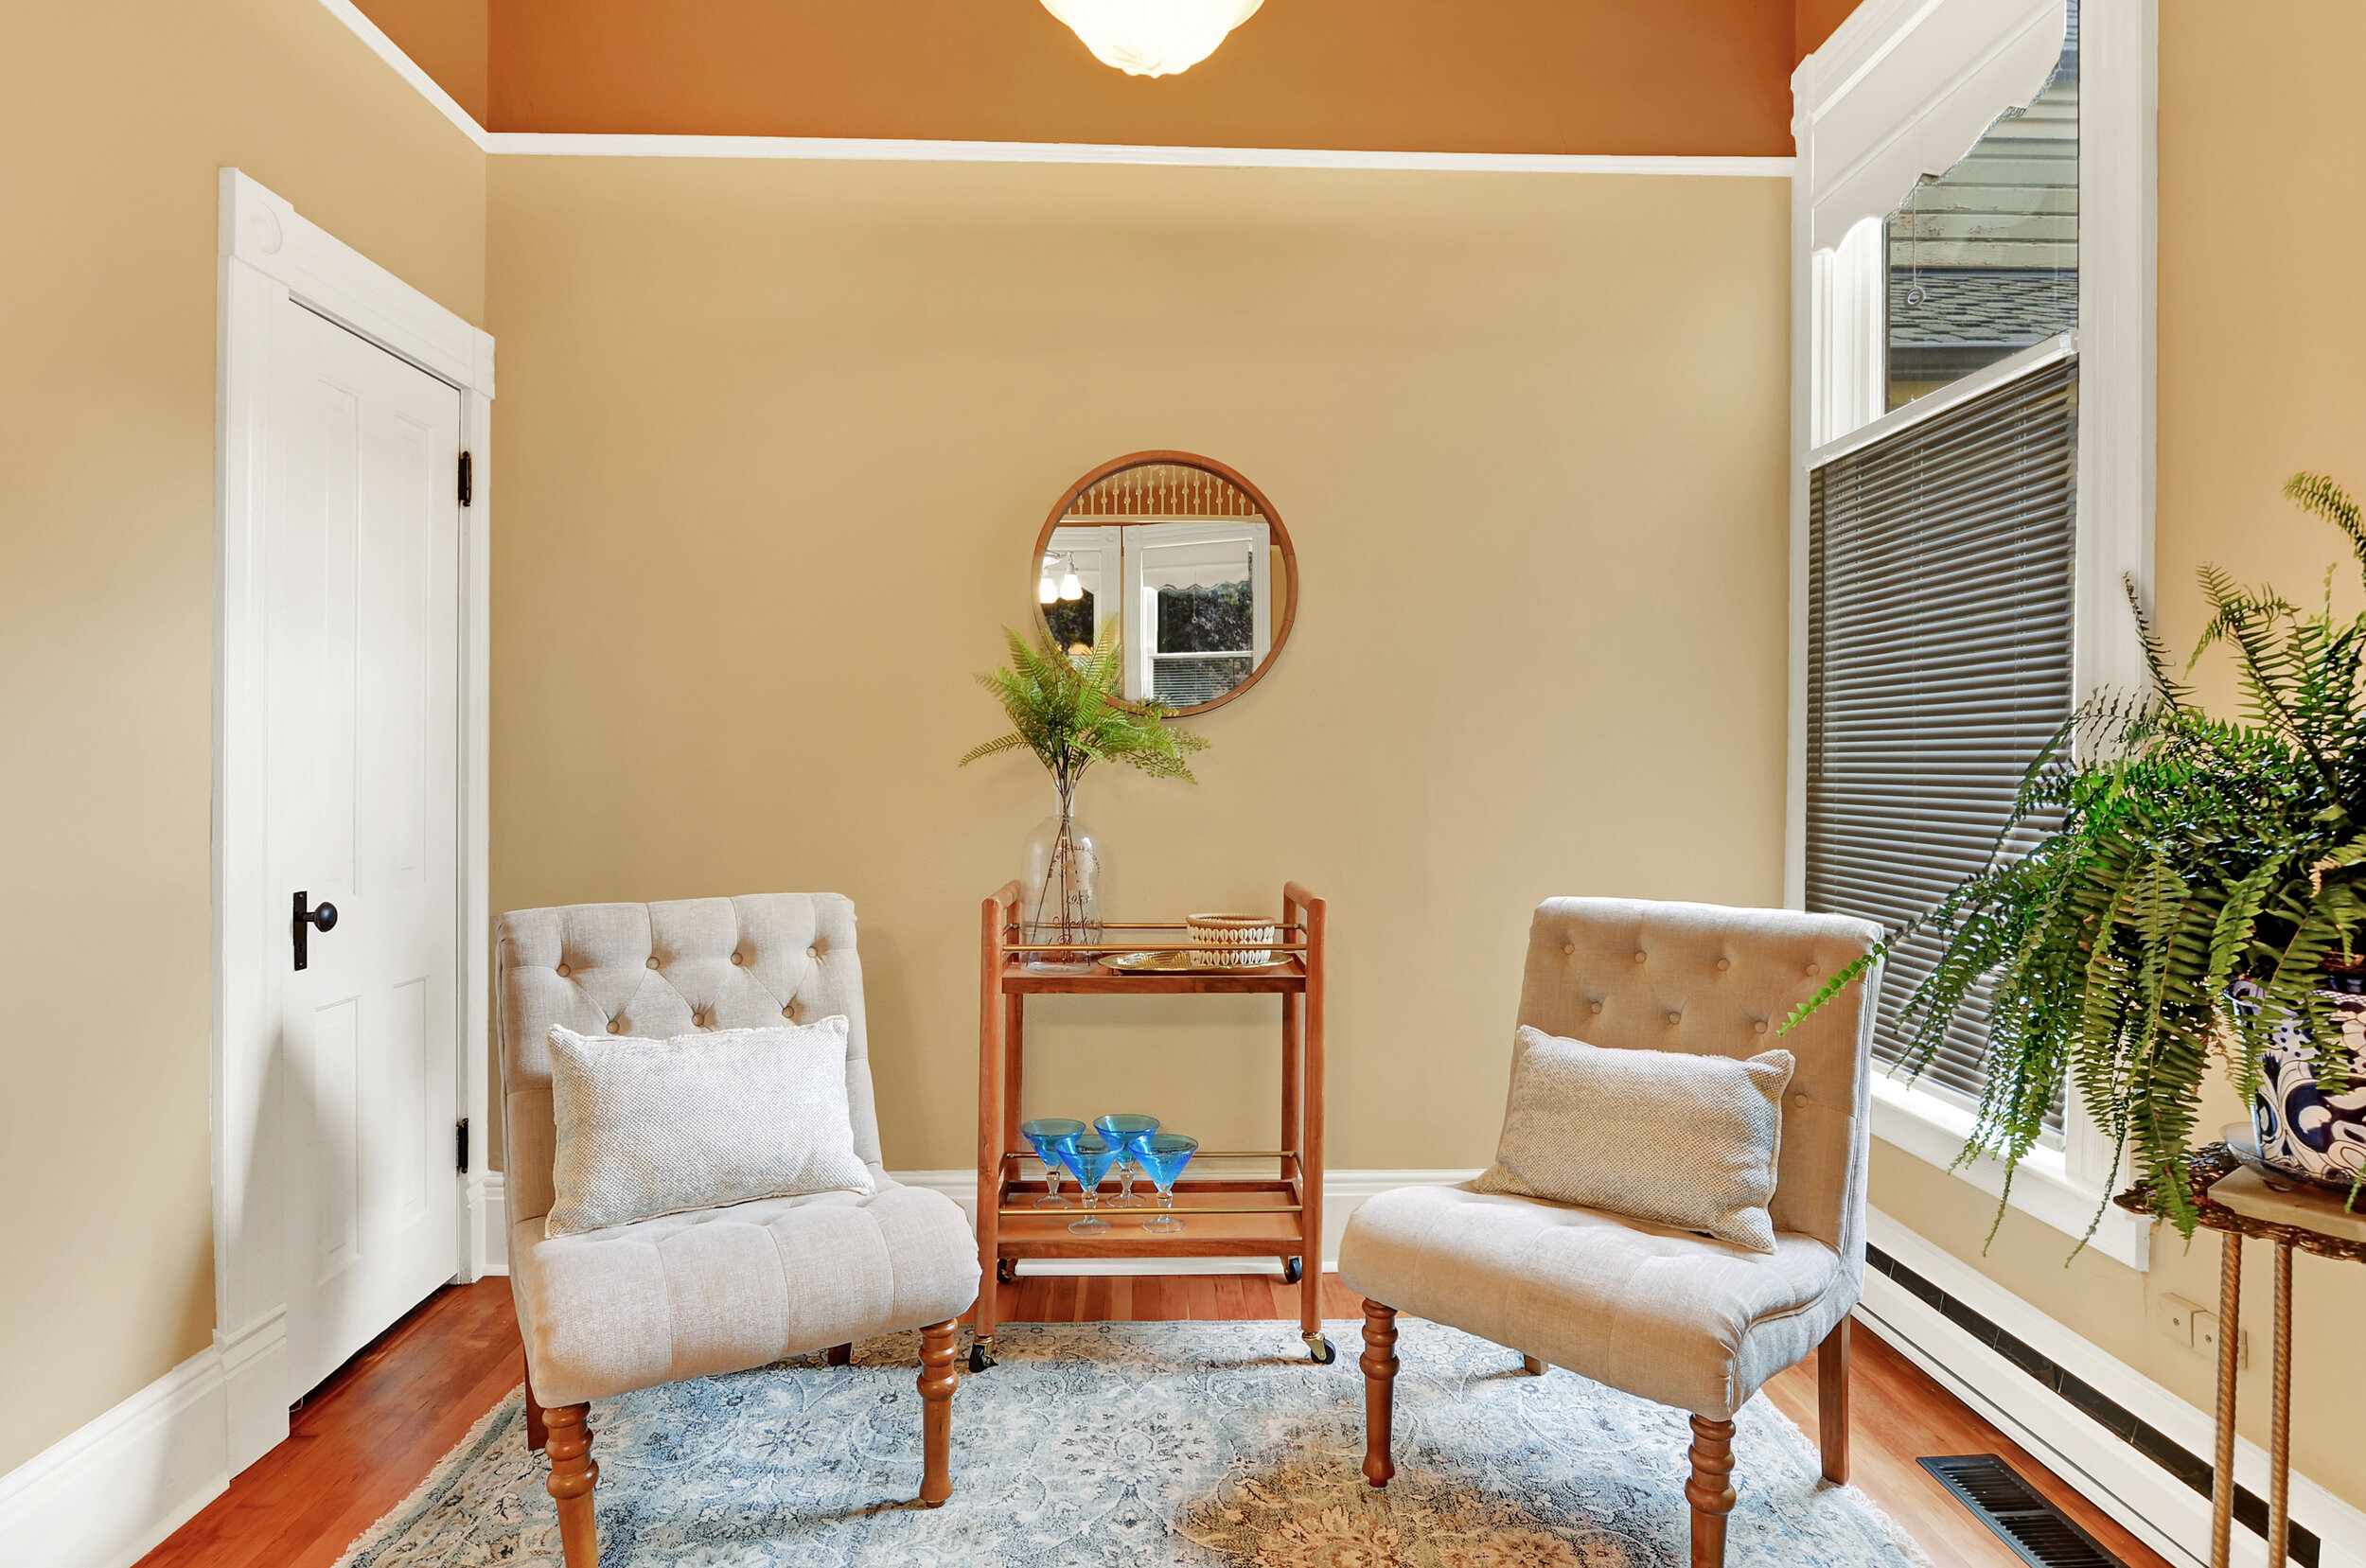 A cased opening from the dining room invites you to this sitting room overlooking the back yard, a pleasant spot for a piano, additional seating, or a desk and bookshelf.